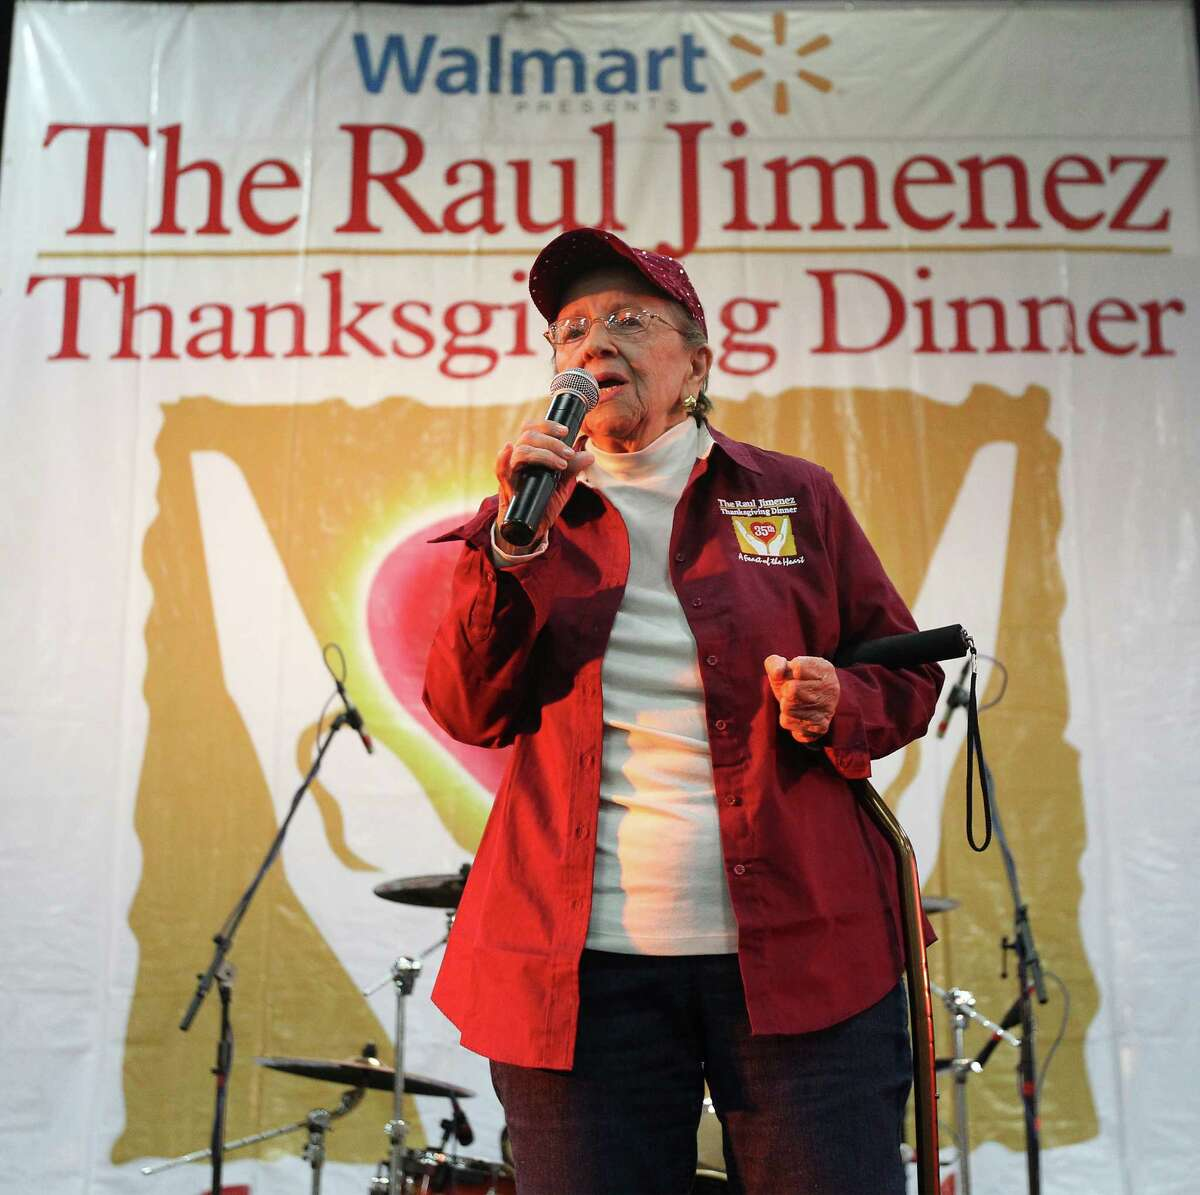 Mary Jimenez, wife of Raul Jimenez, addresses an audience at the 35th Annual Raul Jimenez Thanksgiving Dinner at the Convention Center on Thursday, Nov. 27, 2014. Each year about 25,000 guests gather for a Thanksgiving meal hosted by Patricia Jimenez who has overseen the event since the passing of her father who started the charitable event 35 years ago. Mary Jimenez died Tuesday, June 4, 2019, at the age of 87.